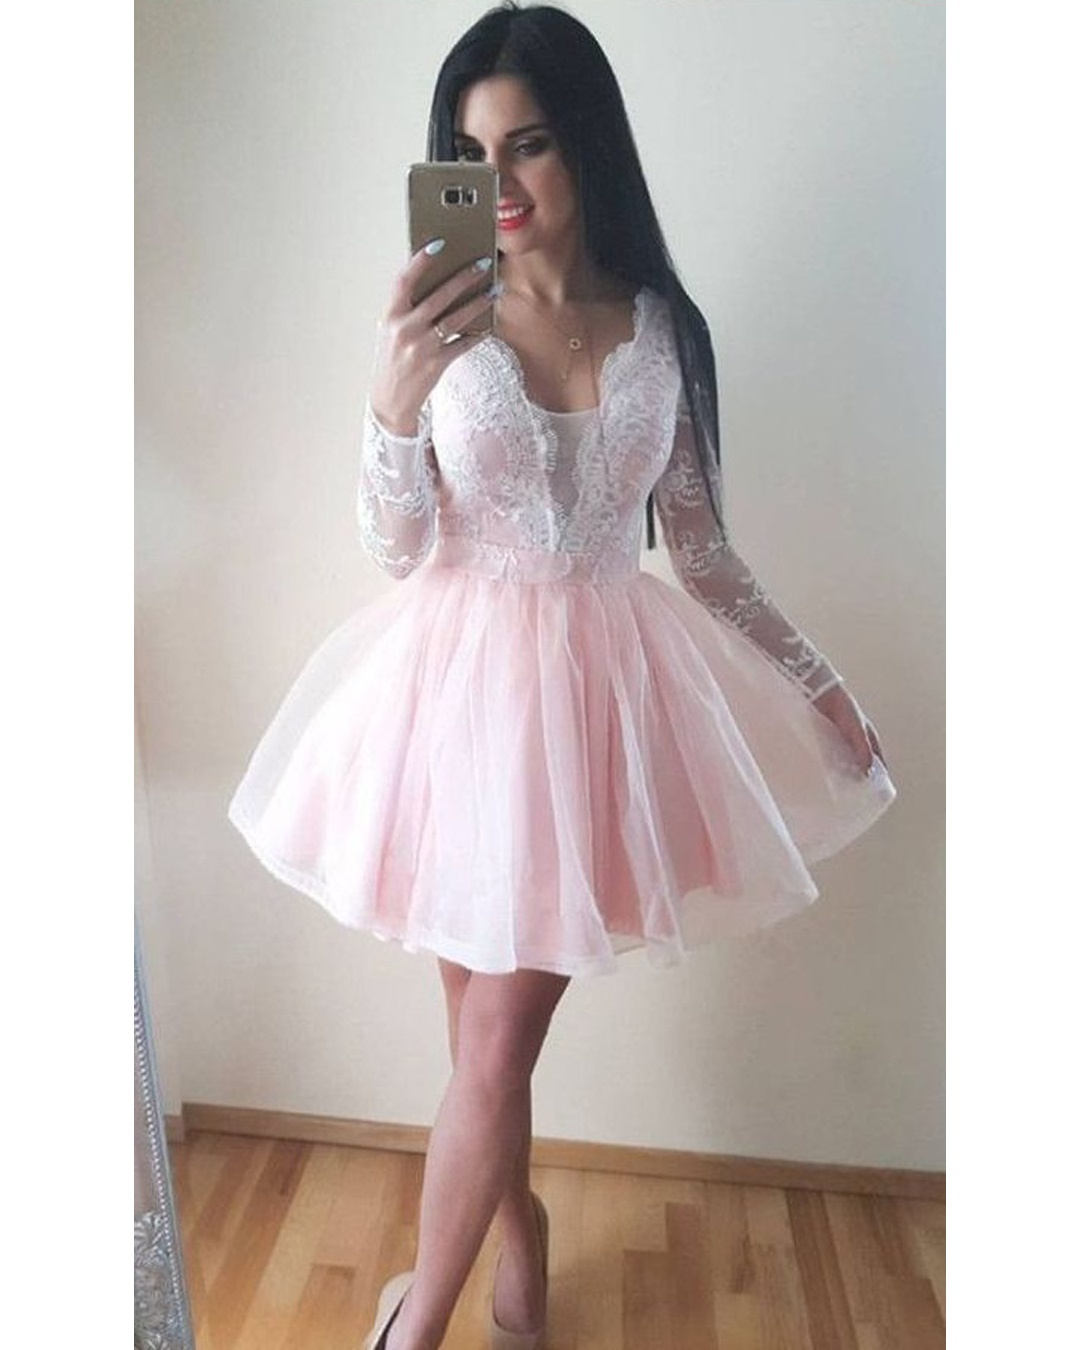 Pale Pink Homecoming Dresslight Pink Short Prom Dresslong Sleeves Pink Lace Homecoming Gow